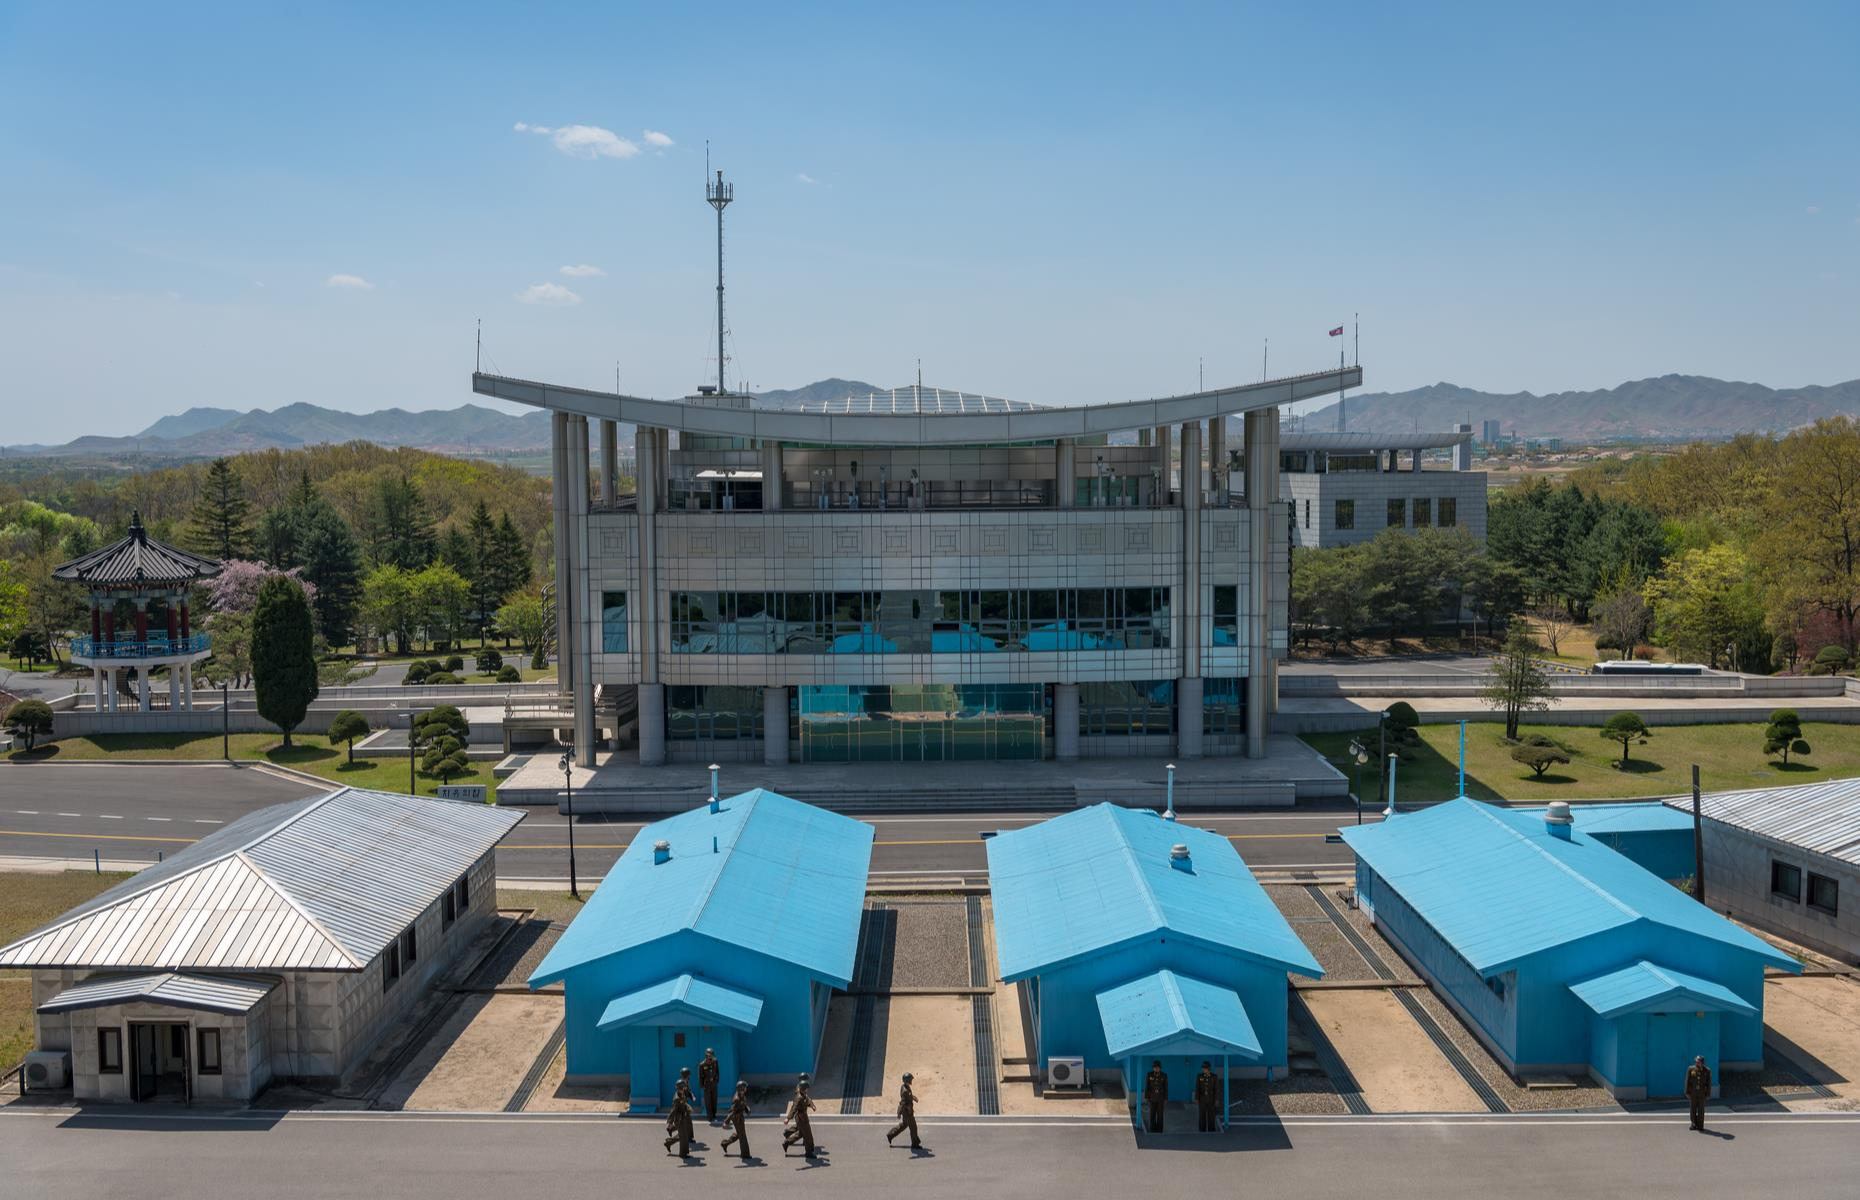 Slide 4 of 51: The most well-known site of the DMZ and the closest point to North Korea, isthe JSA (Joint Security Area, pictured). Heresoldiers from both countries face each other with only a few feet of gravel in between, always ready to act in case of an emergency. In the JSA, negotiations between North and South Korea are held, with no negotiator having to leave theircountry, becausethe border runs right through the centerof the building and even the table the delegates sit around.